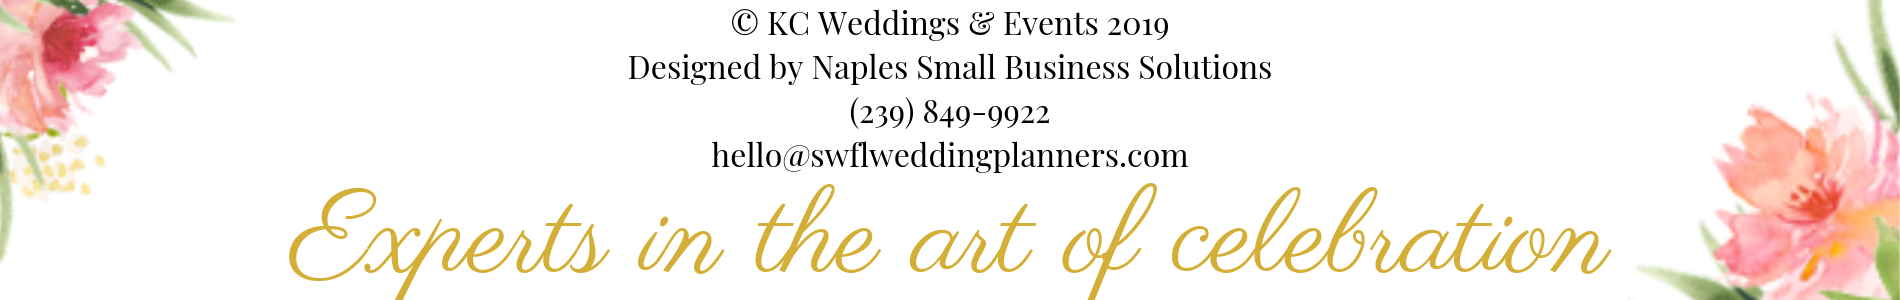 KC Weddings and Events